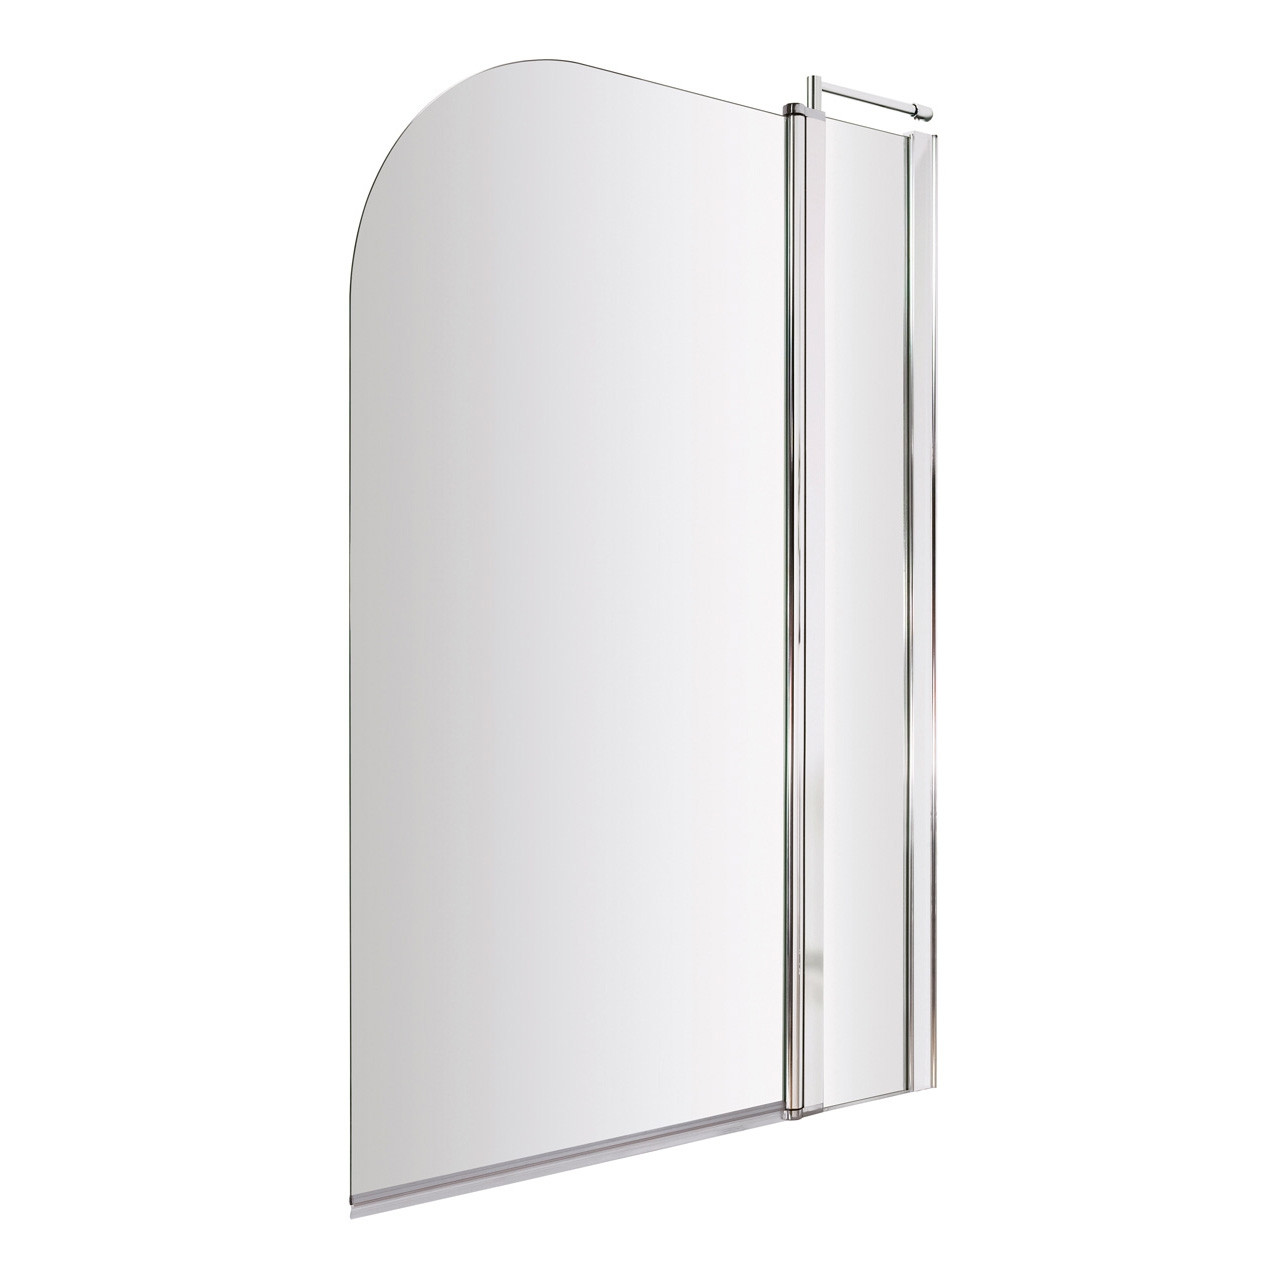 Premier Straight Bath Screen with Fixed Panel - NSS2